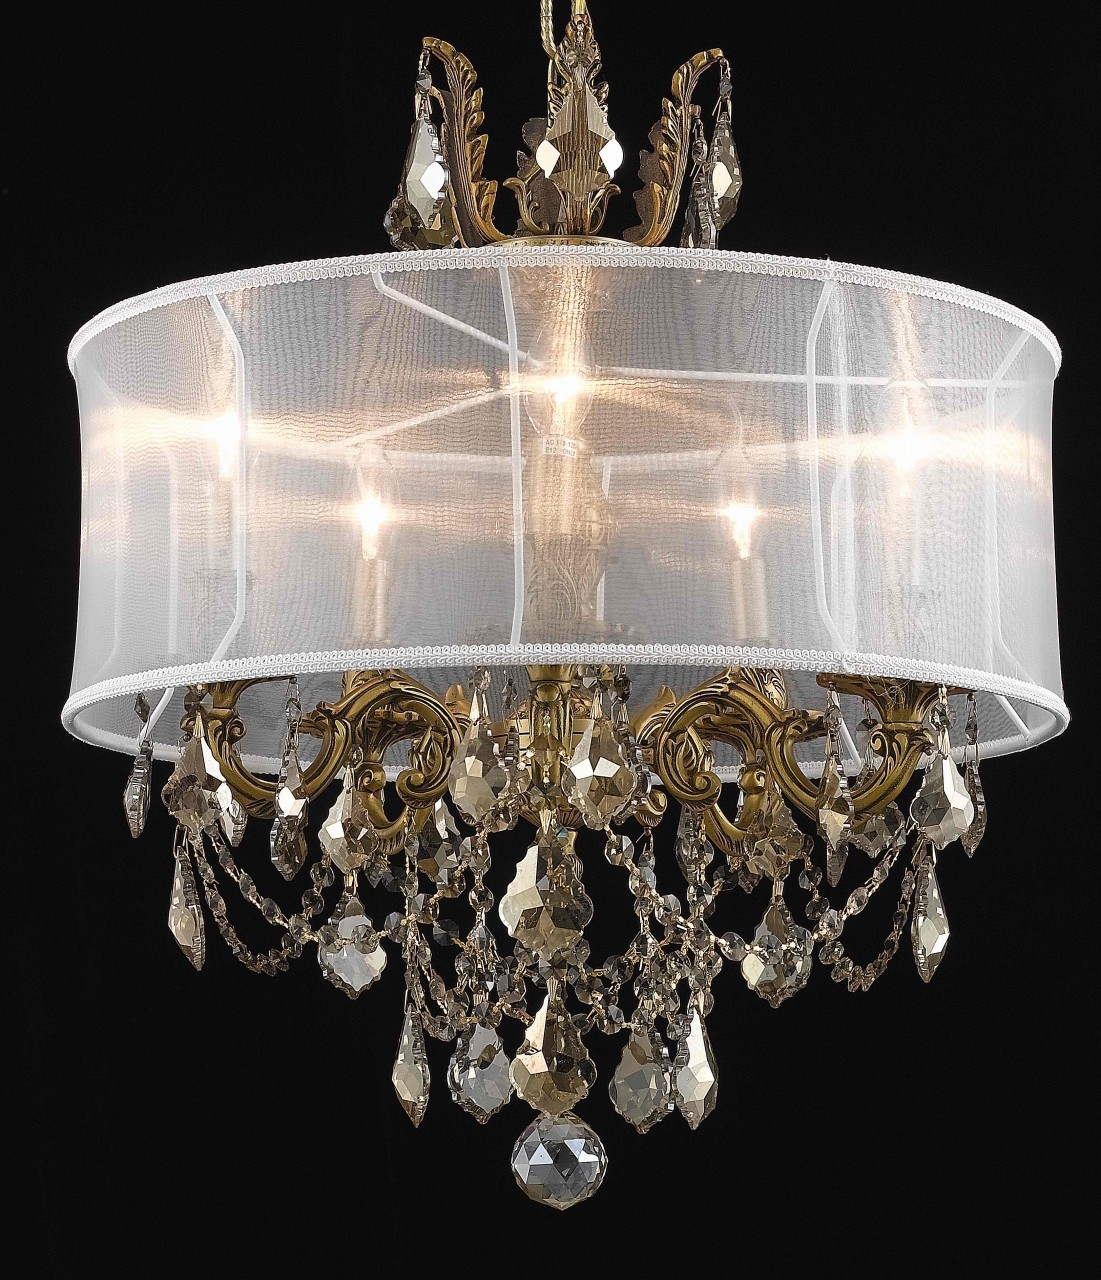 Art nouveau inspired chandelier with sheer lamp shade 4541 - Width/Diameter: 22 Height: 20 Lights: 5